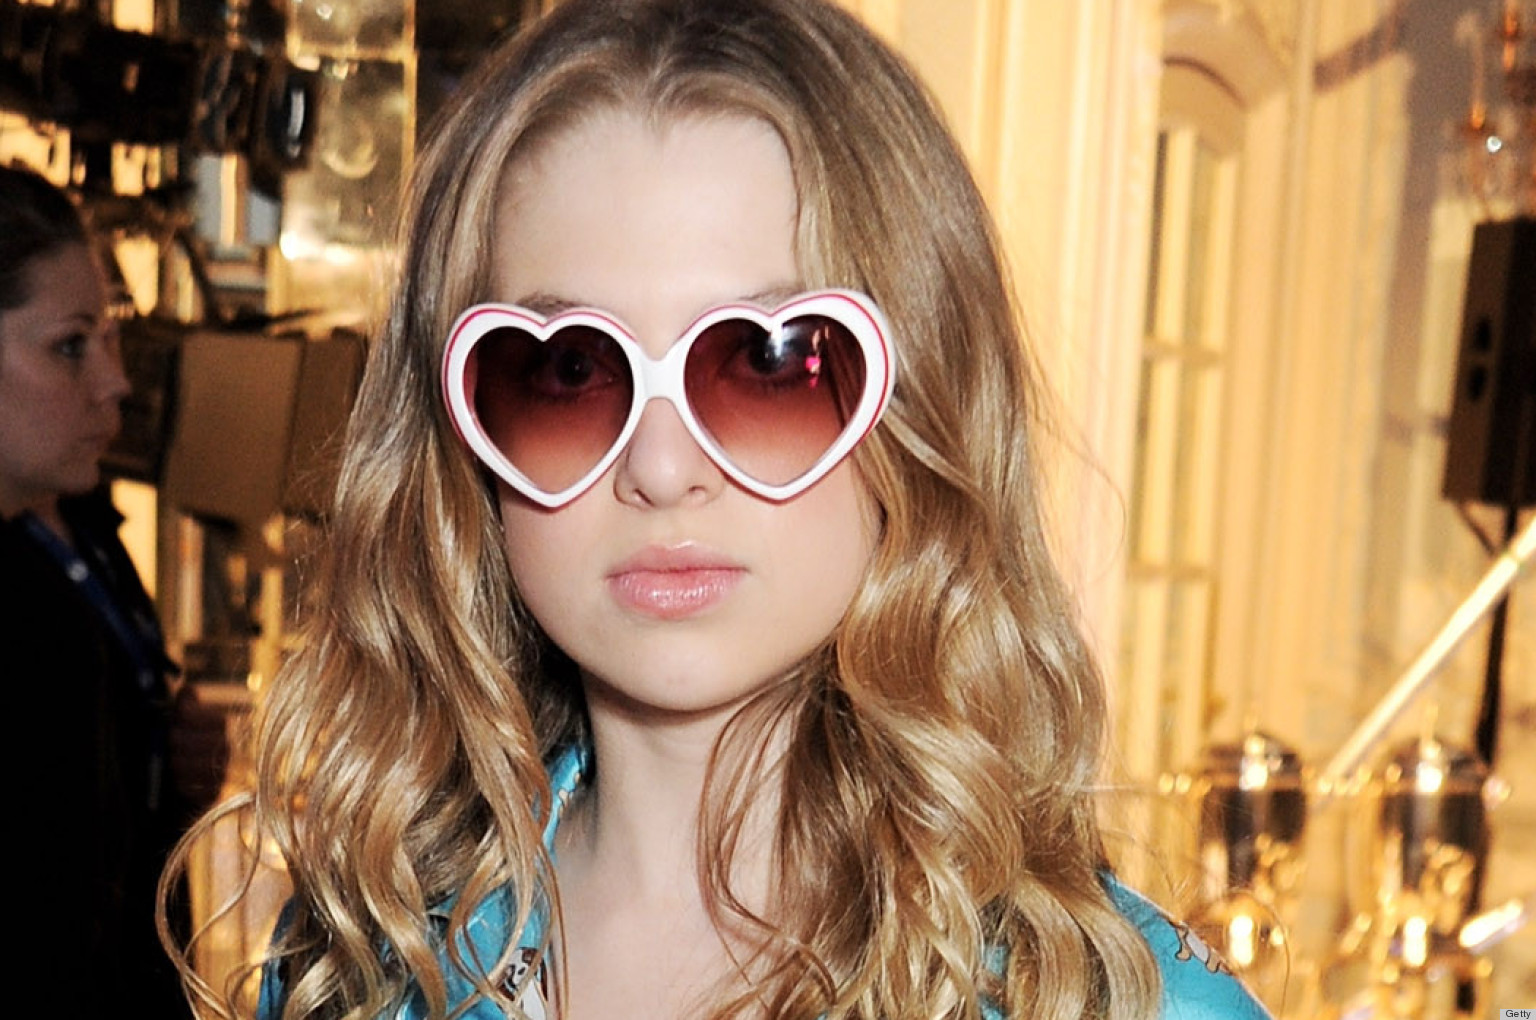 Anais Gallagher Attends Moschino Show Wears Coolest